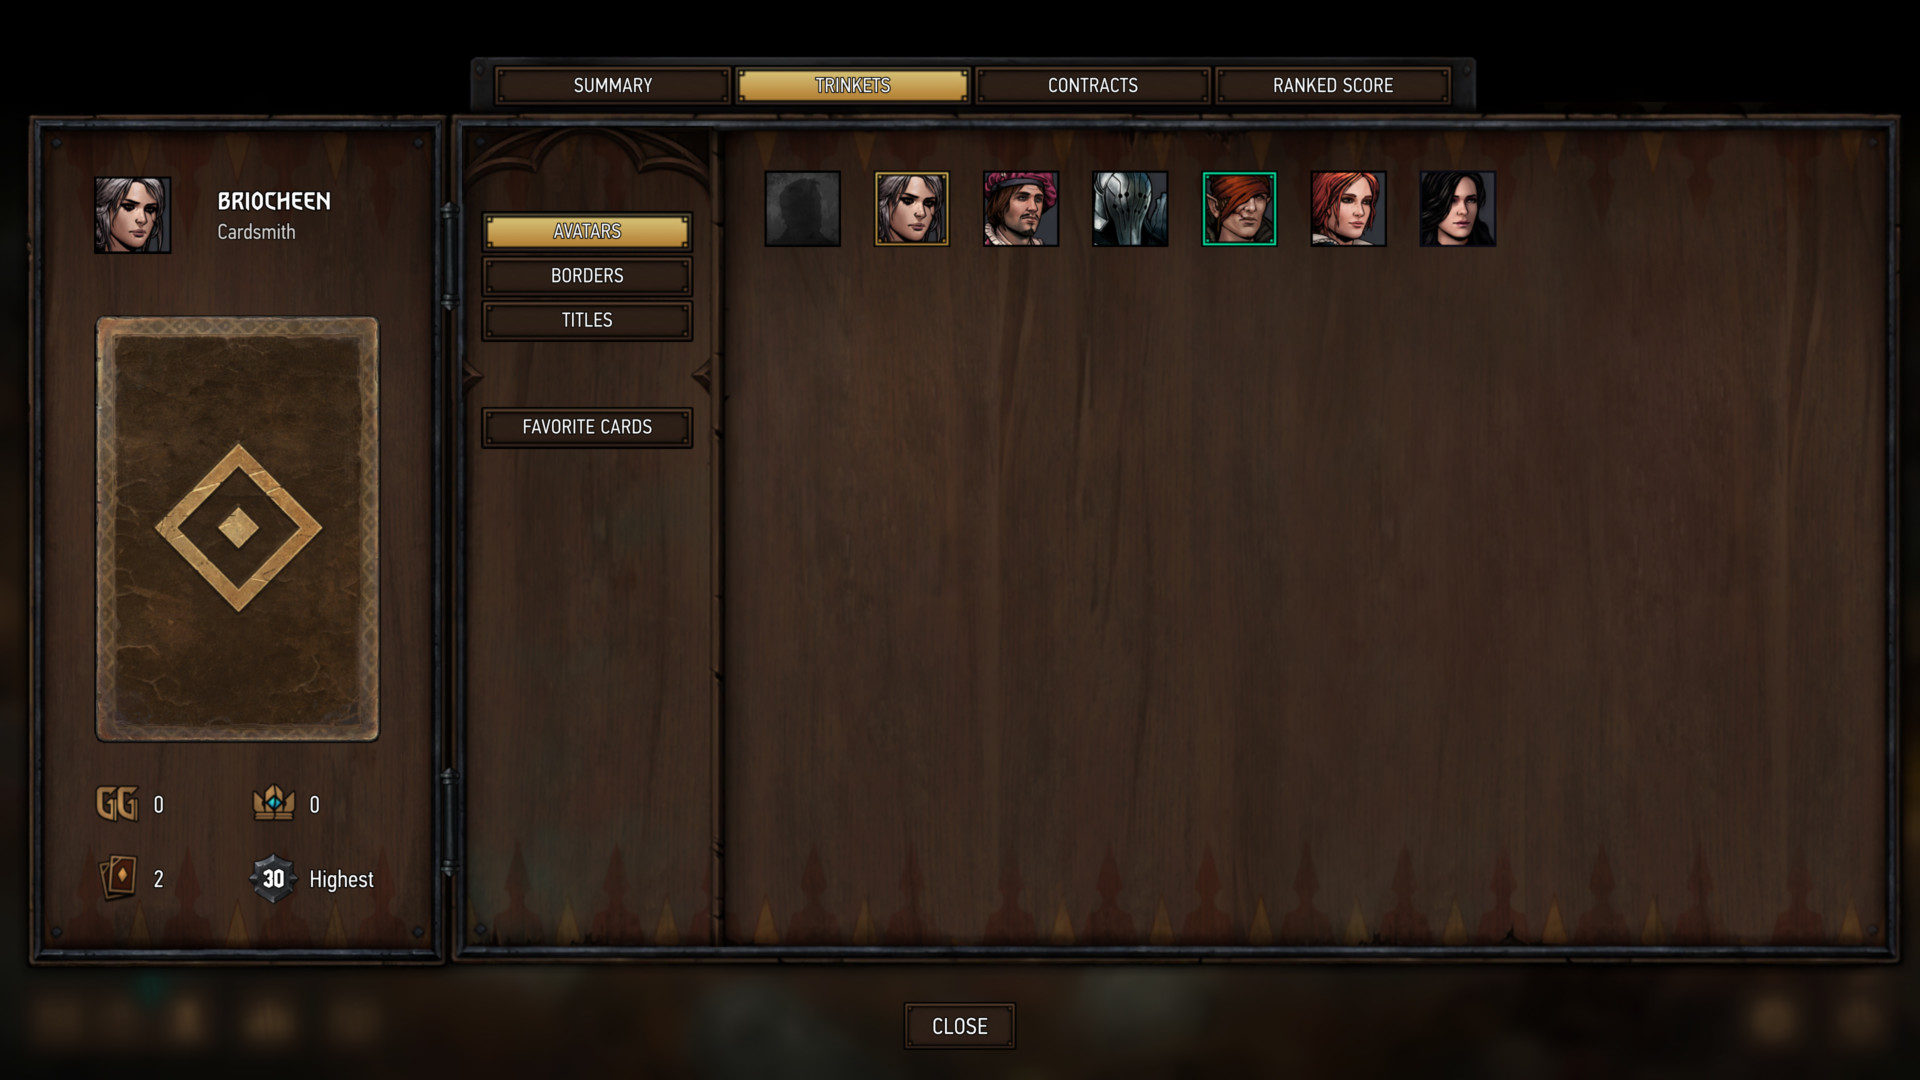 Avatars screenshot of Gwent: The Witcher Card Game video game interface.